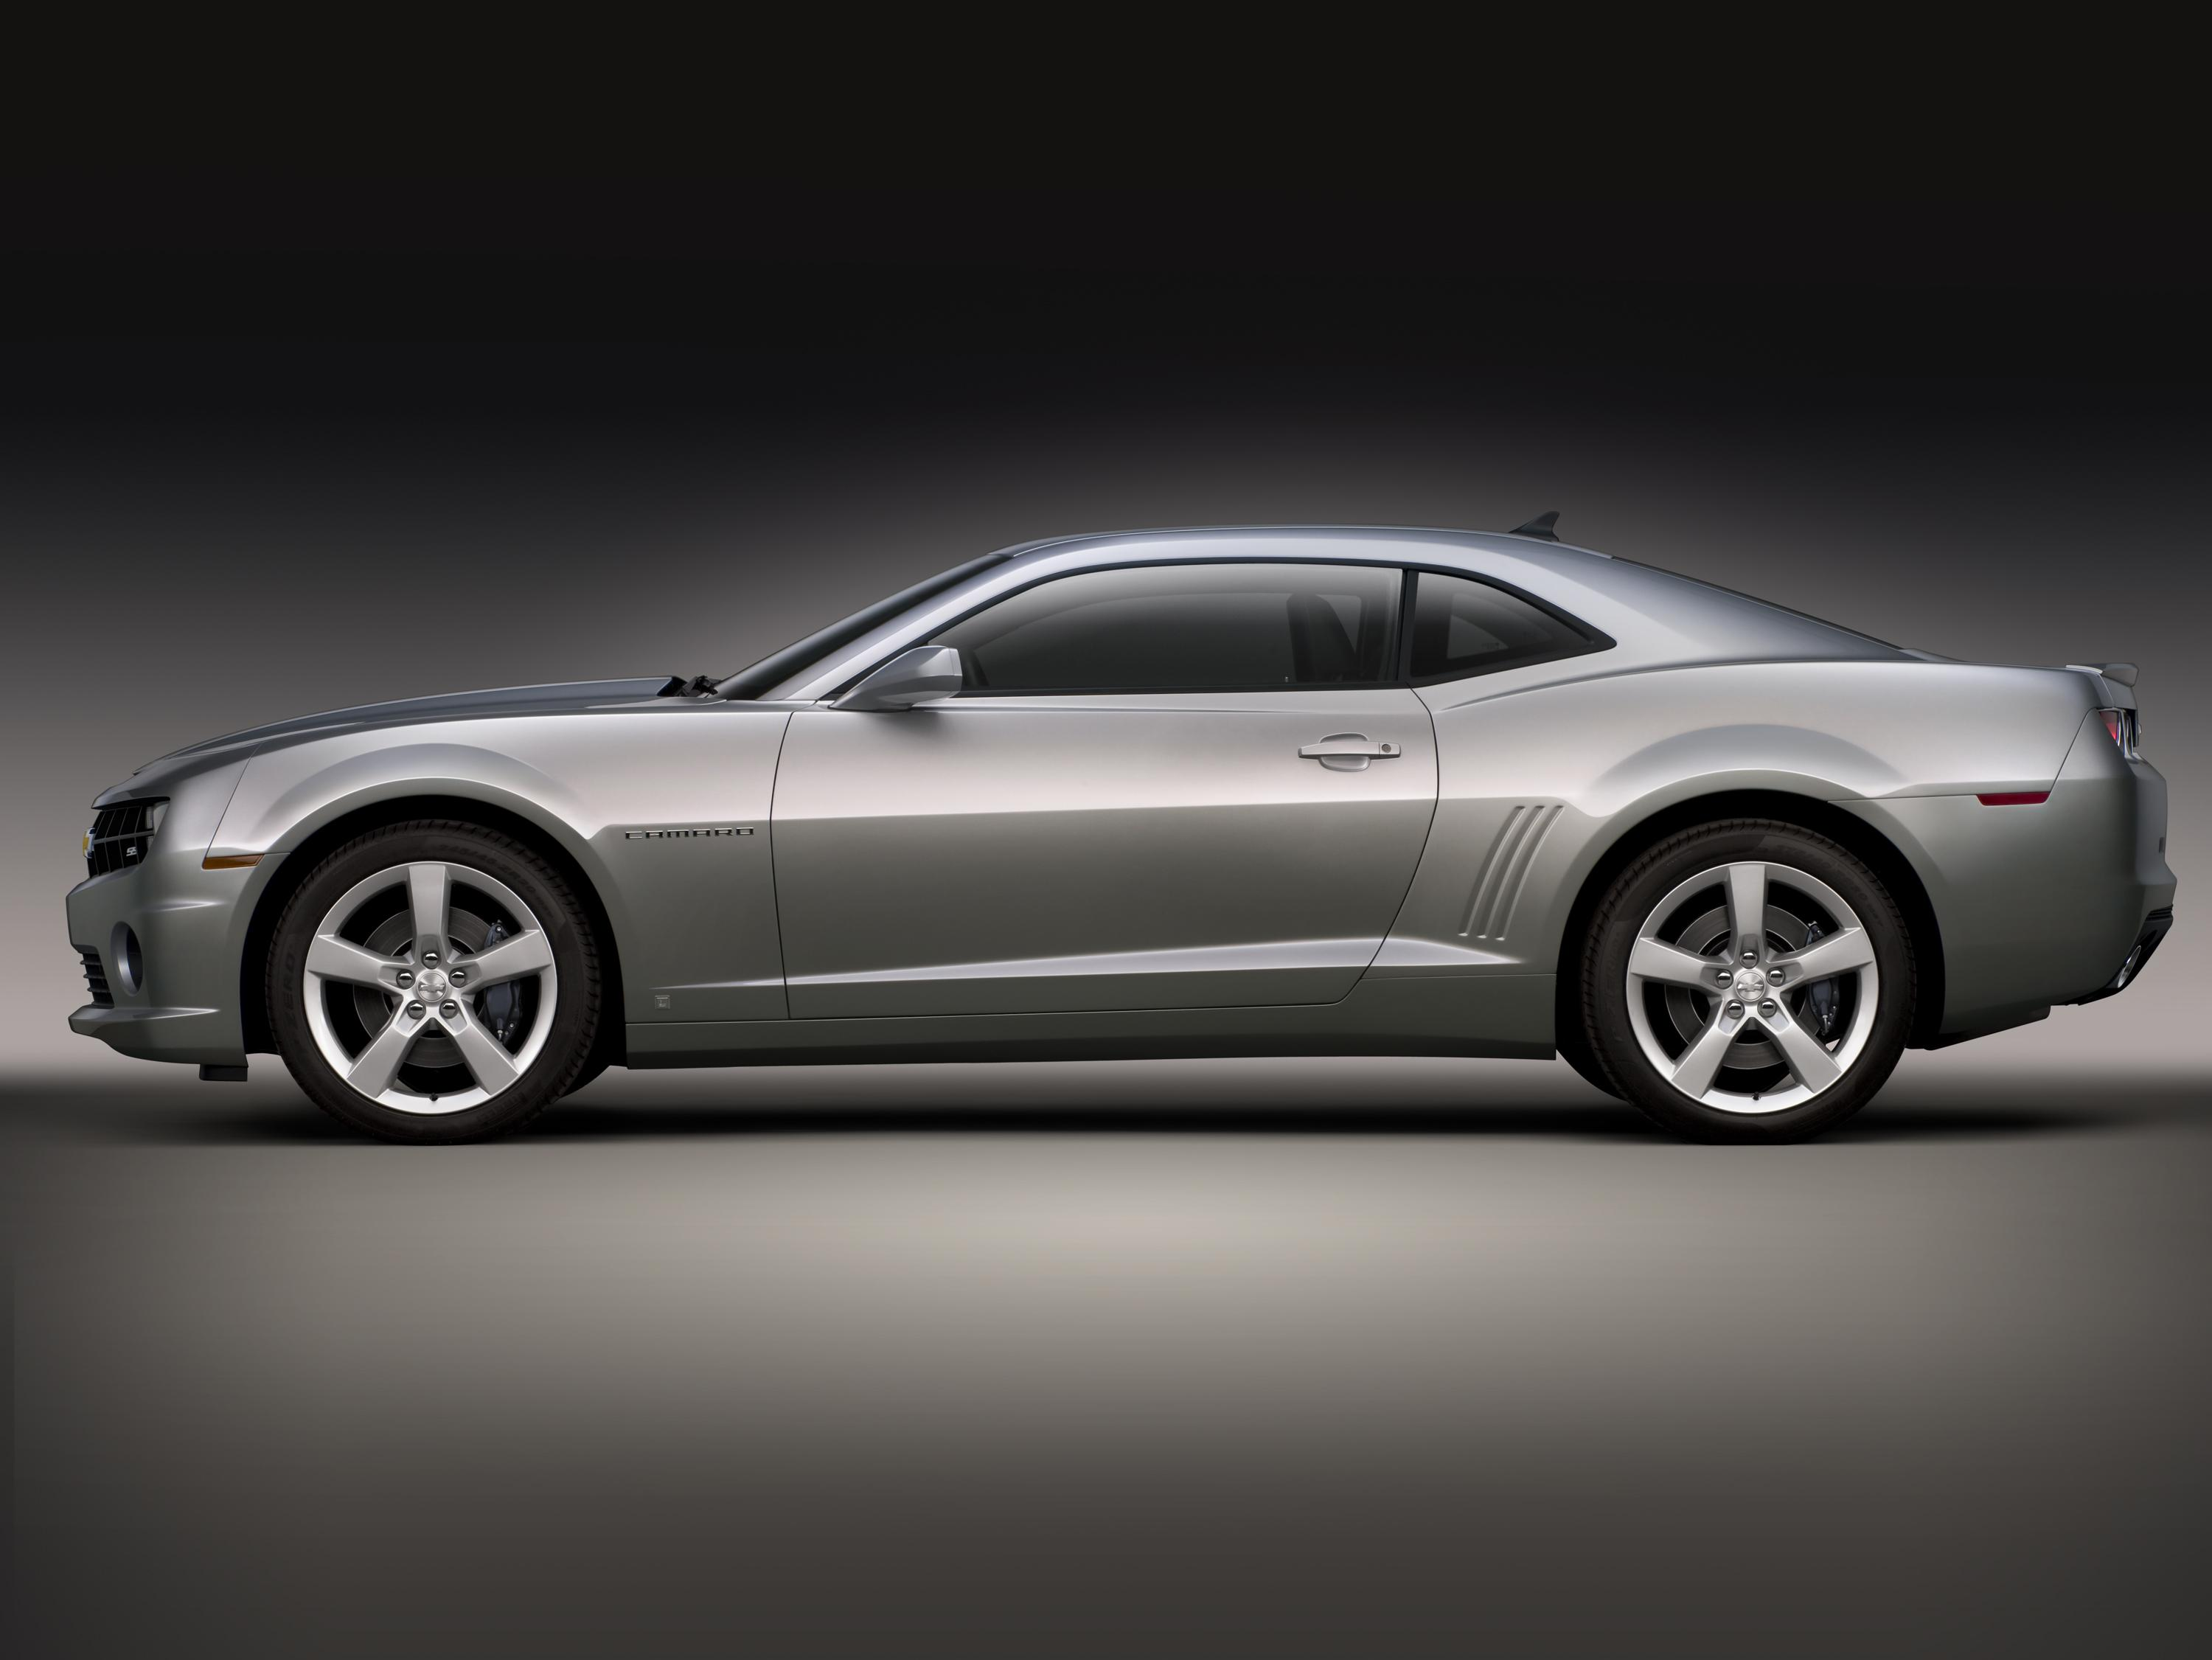 2010 chevrolet camaro ss review - top speed